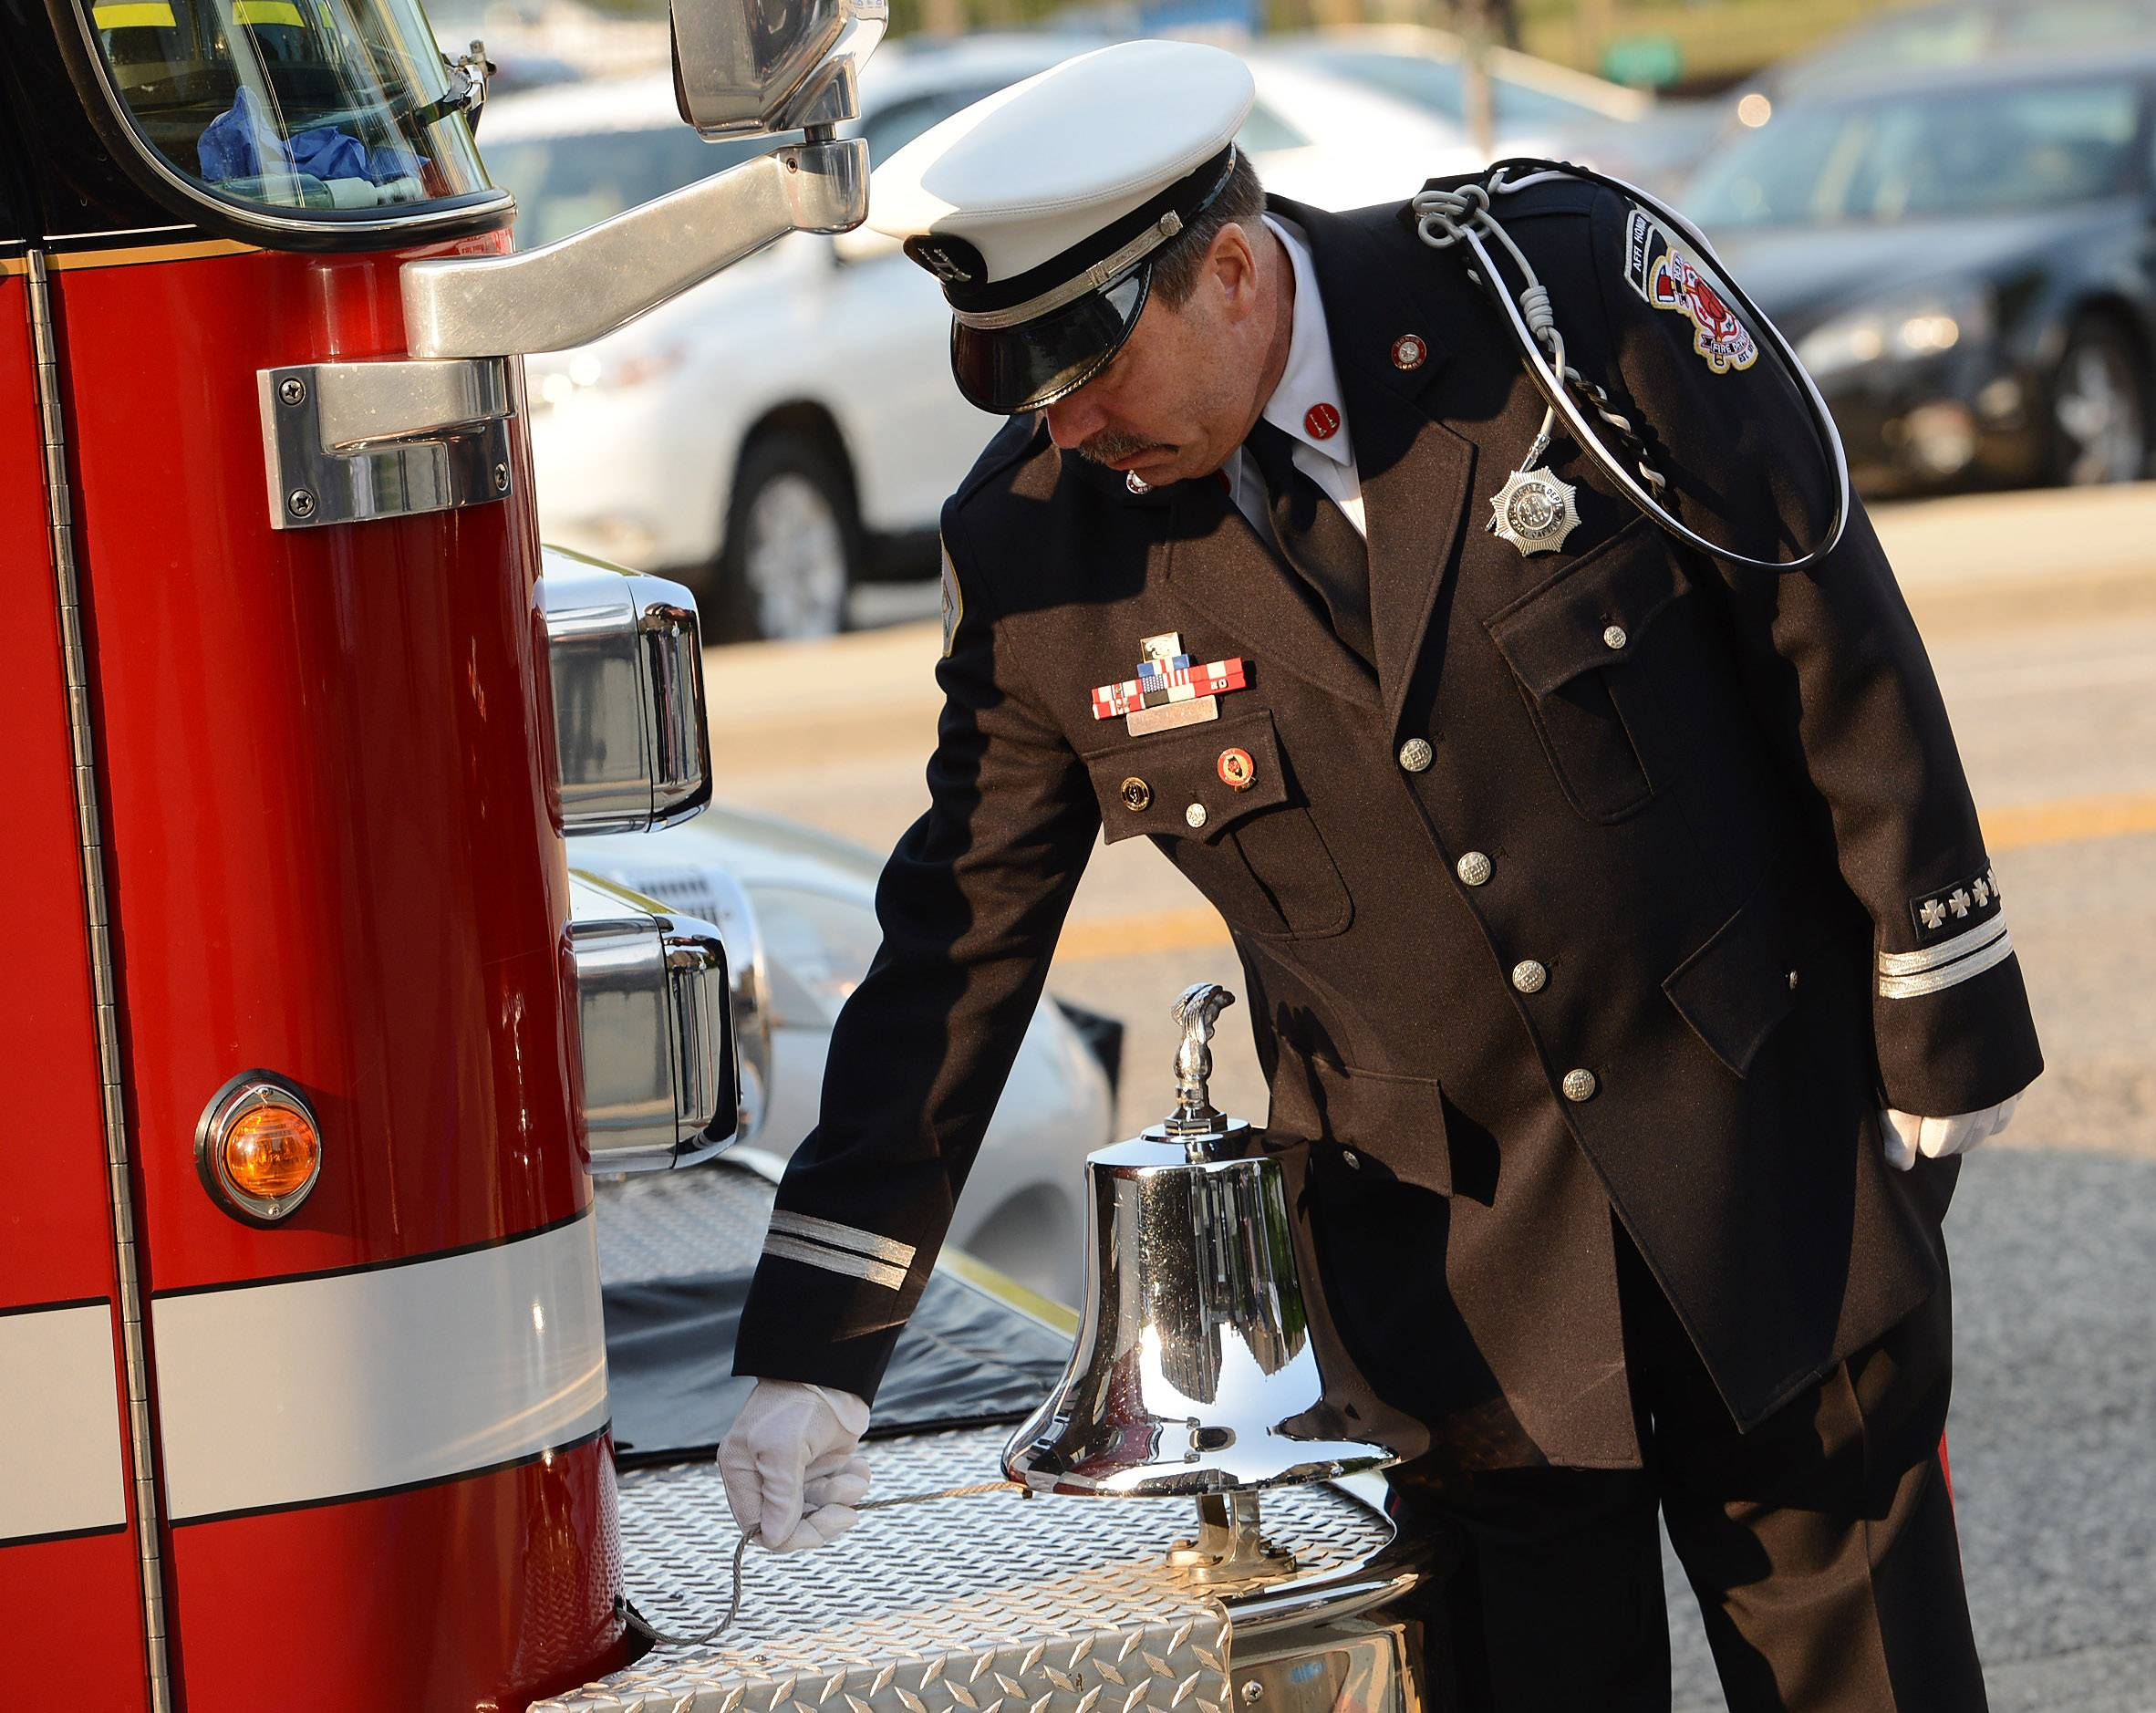 Des Plaines Fire Capt. Scott Peirson rings the ceremonial bell during the Sept. 11 remembrance ceremony at Des Plaines City Hall.